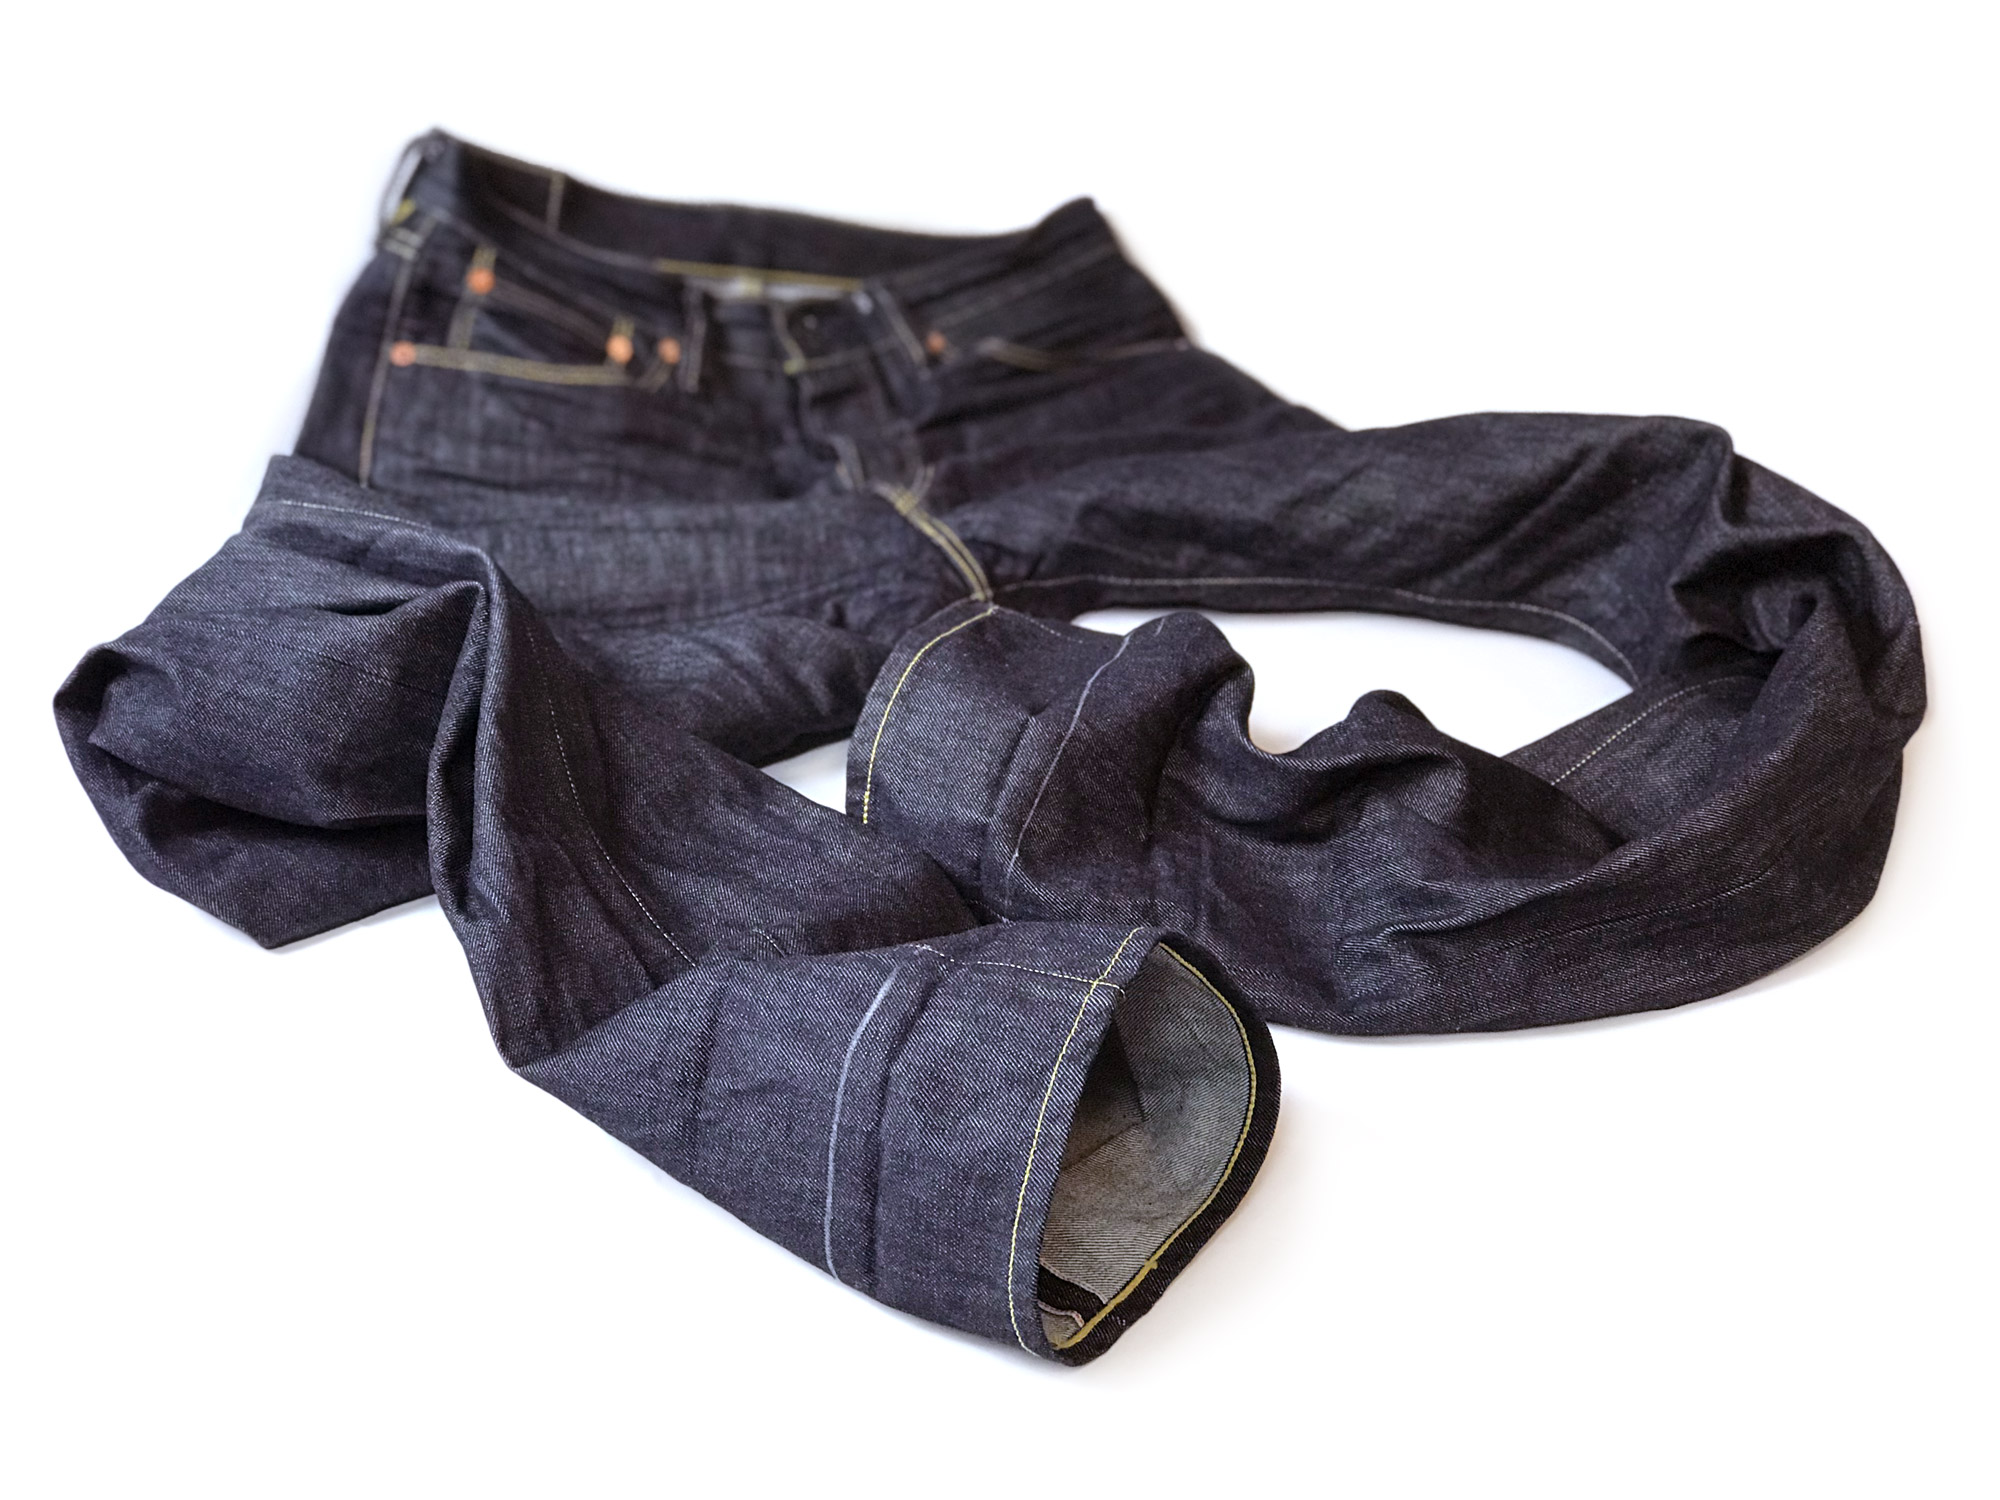 Leroy Strauss & Co. jeans before hemming